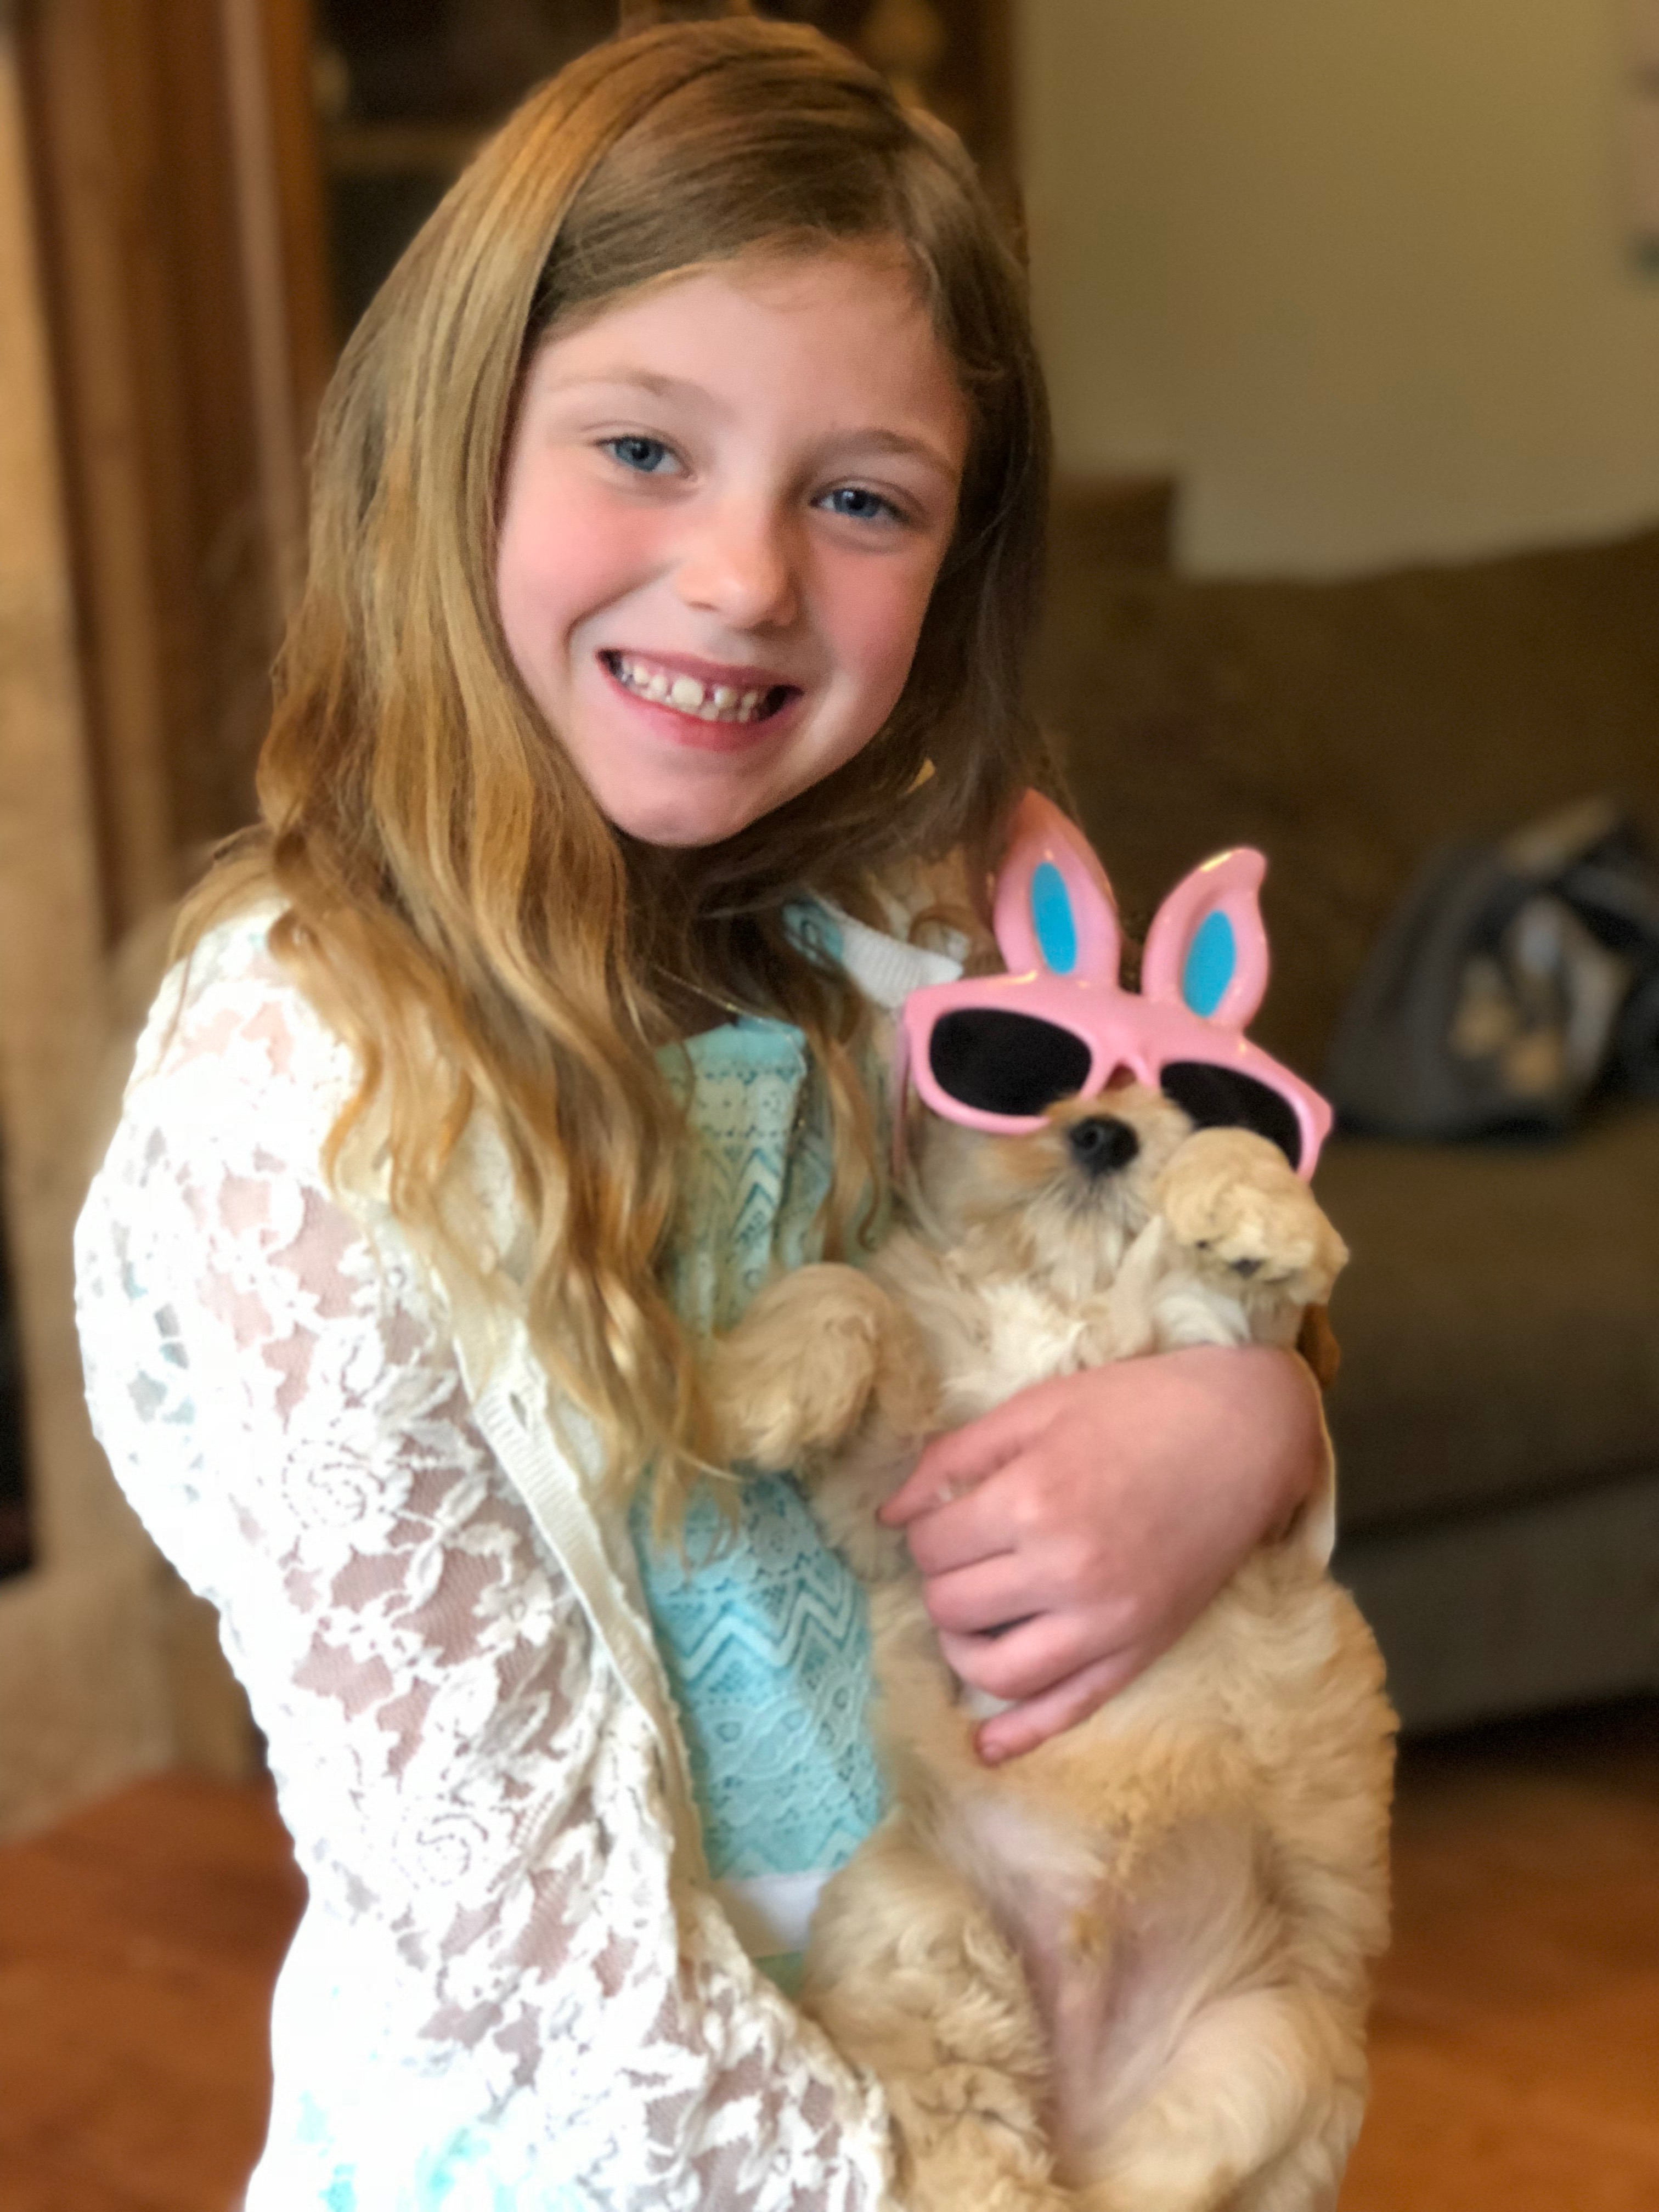 Becca & the Easter Puppy